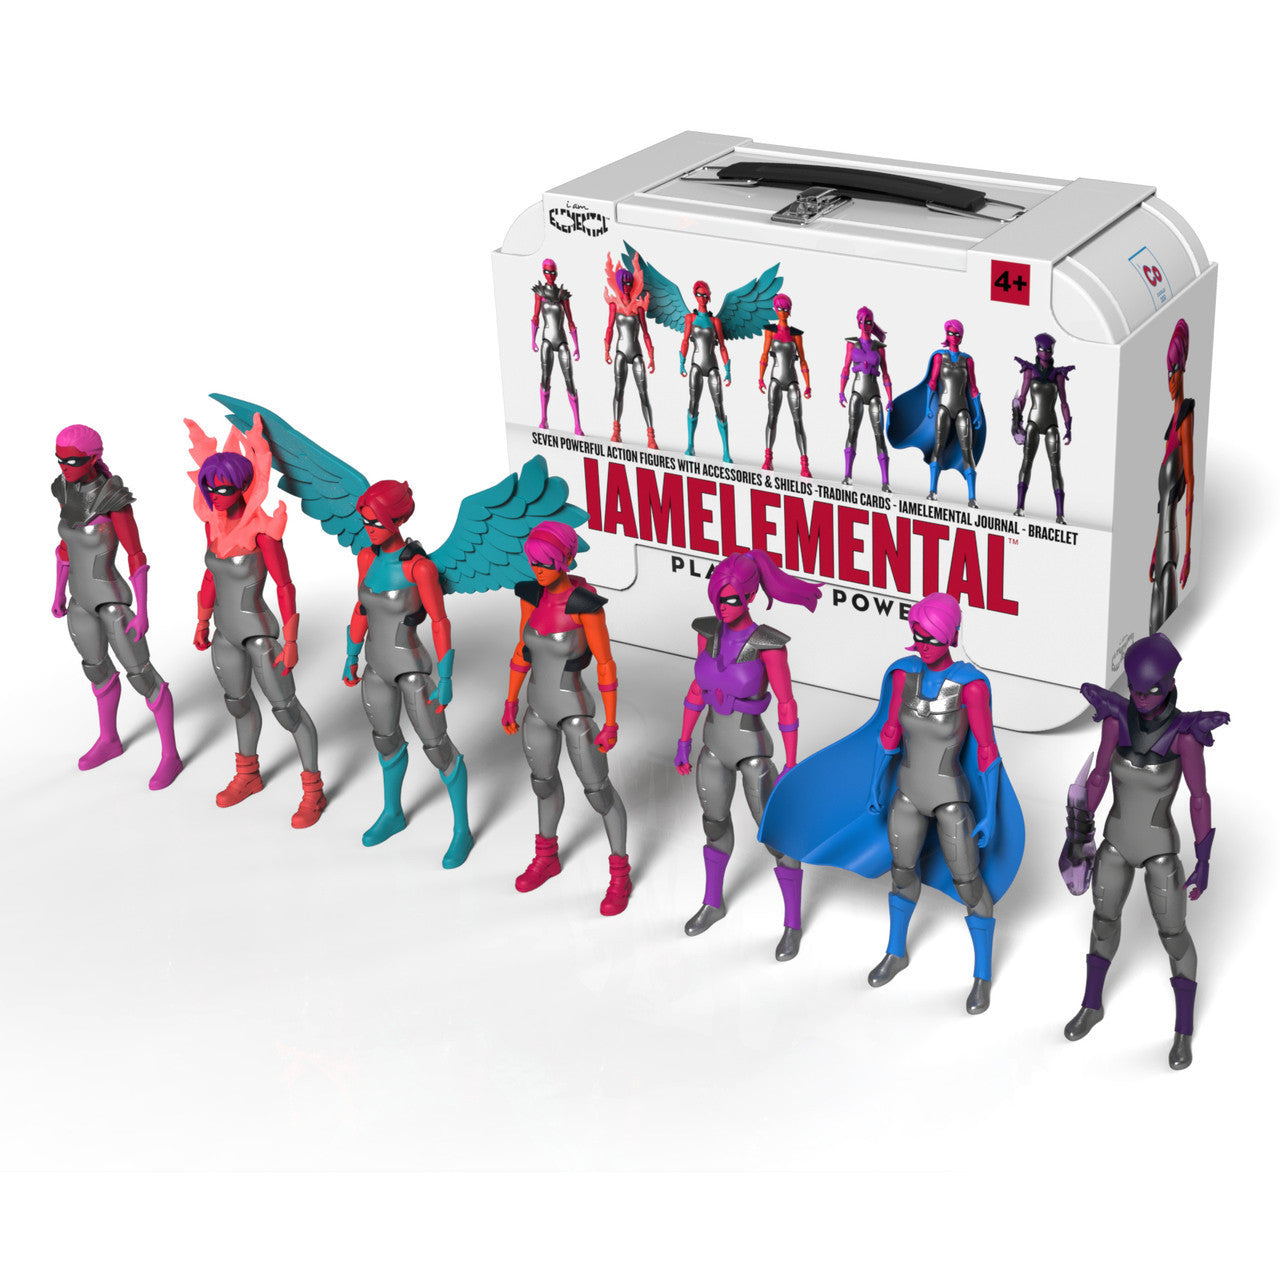 Series 1/Courage Lunchbox with 7 Action Figures - IAmElemental